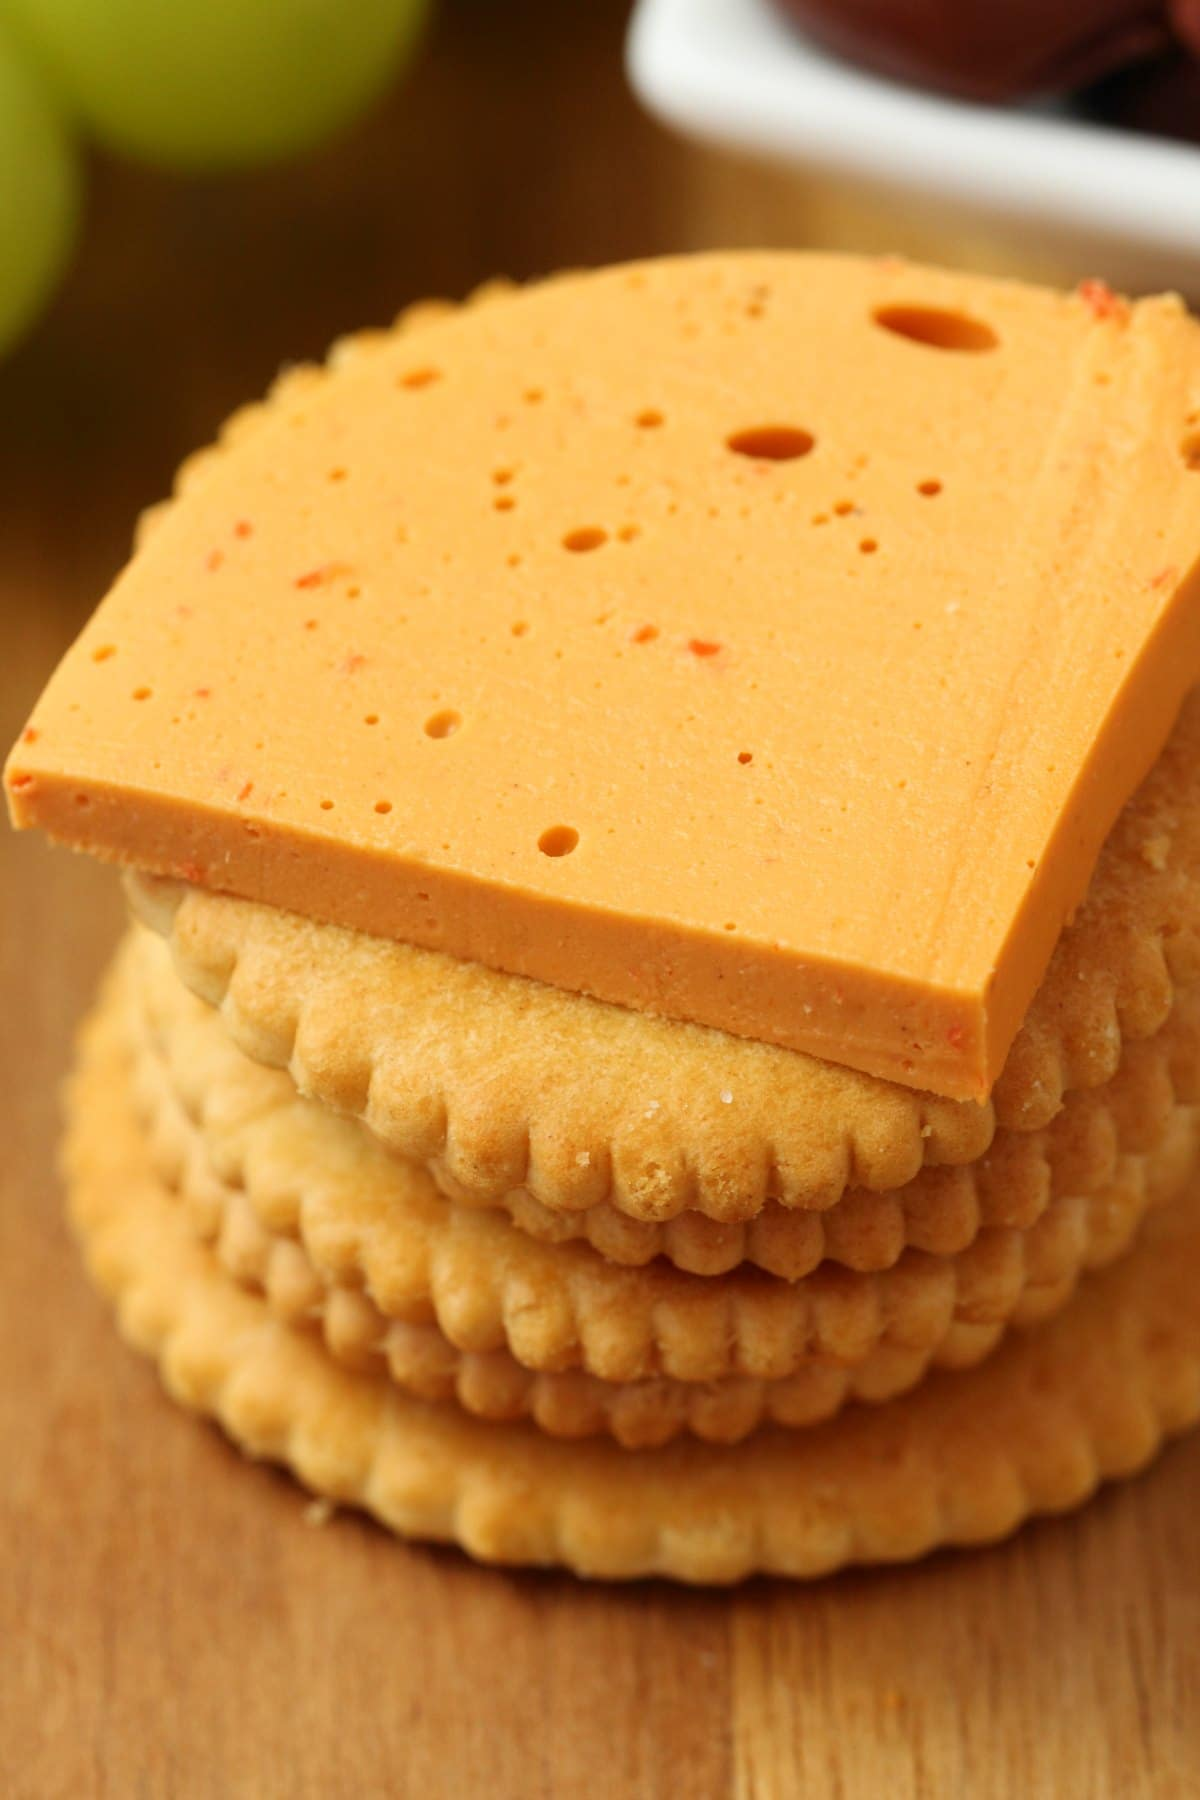 Sliced vegan cheddar cheese on top of a stack of crackers.